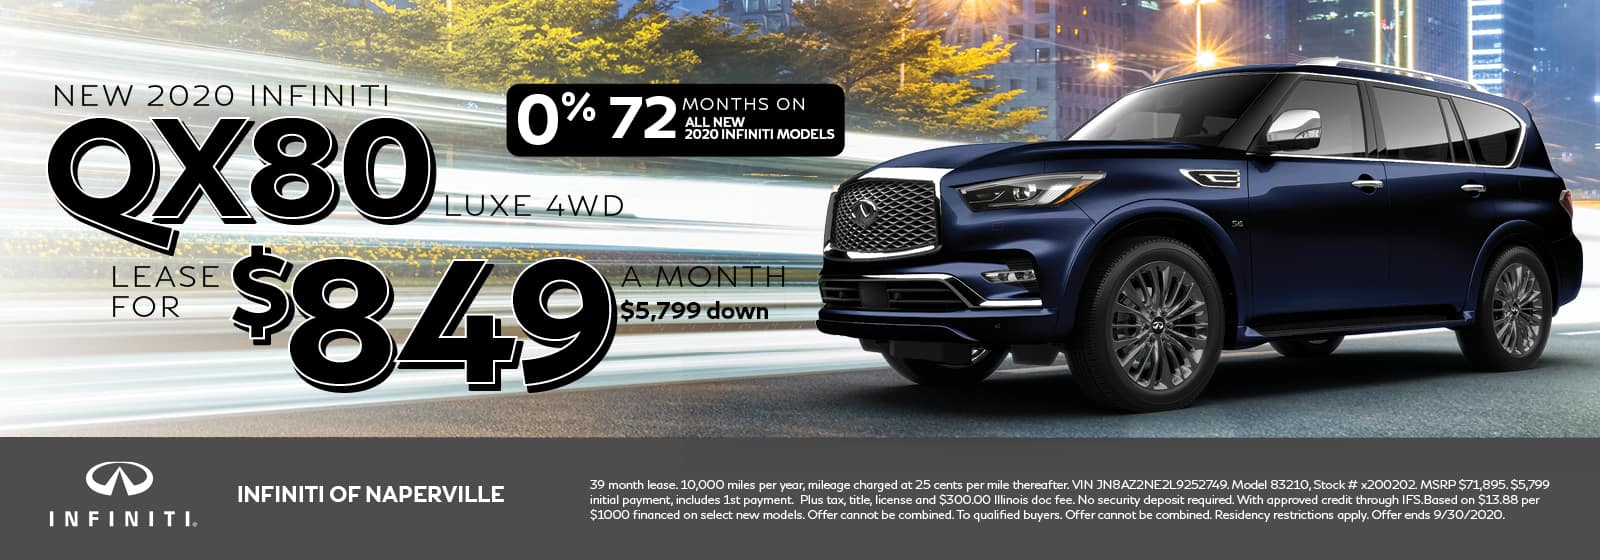 2020 INFINITI QX80 lease offer, $849/mo for 72 Months | Naperville, IL